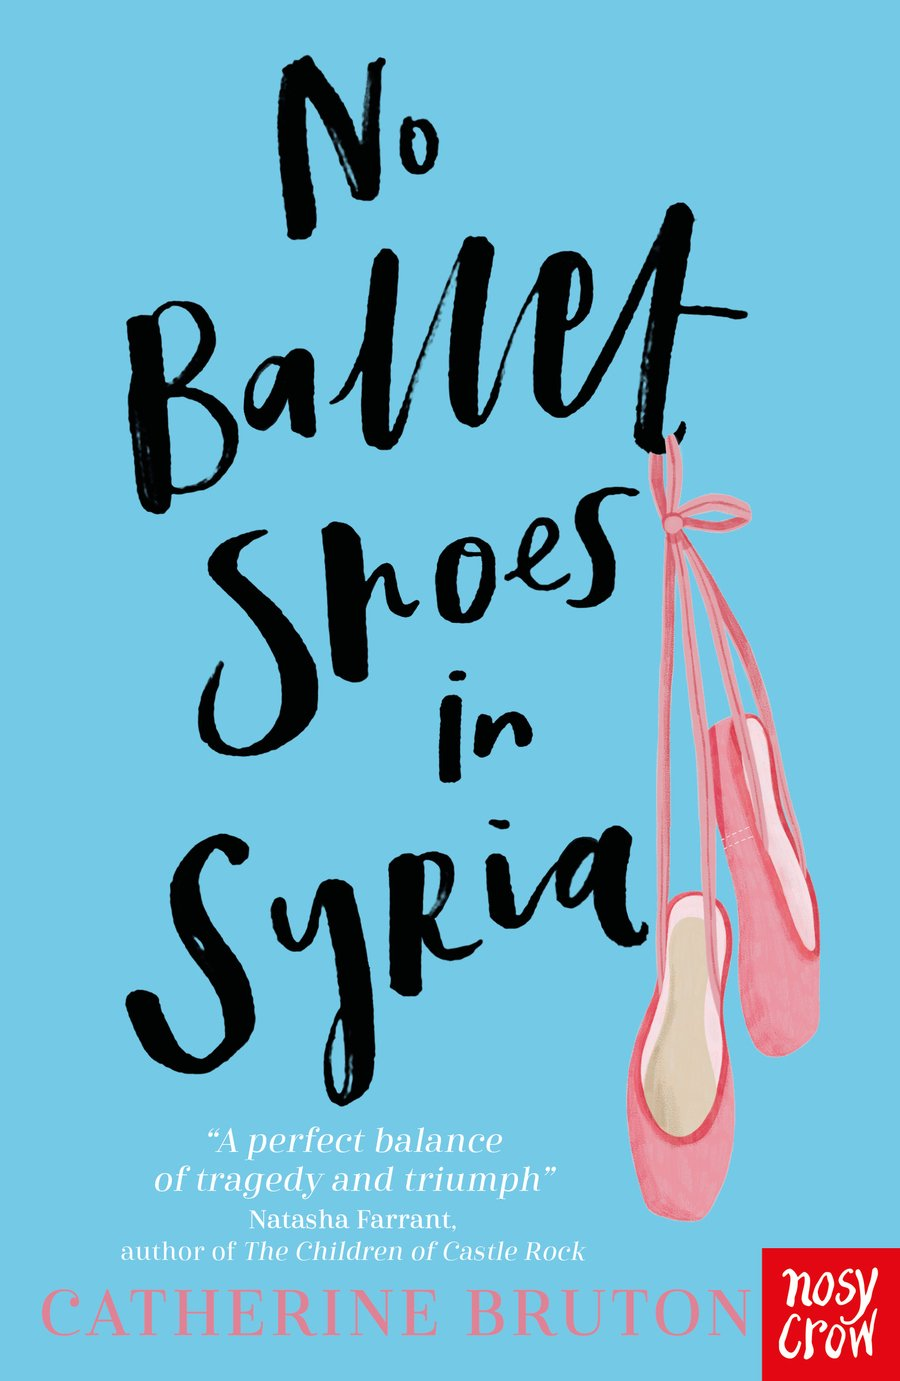 No Ballet Shoes in Syria - Catherine Bruton